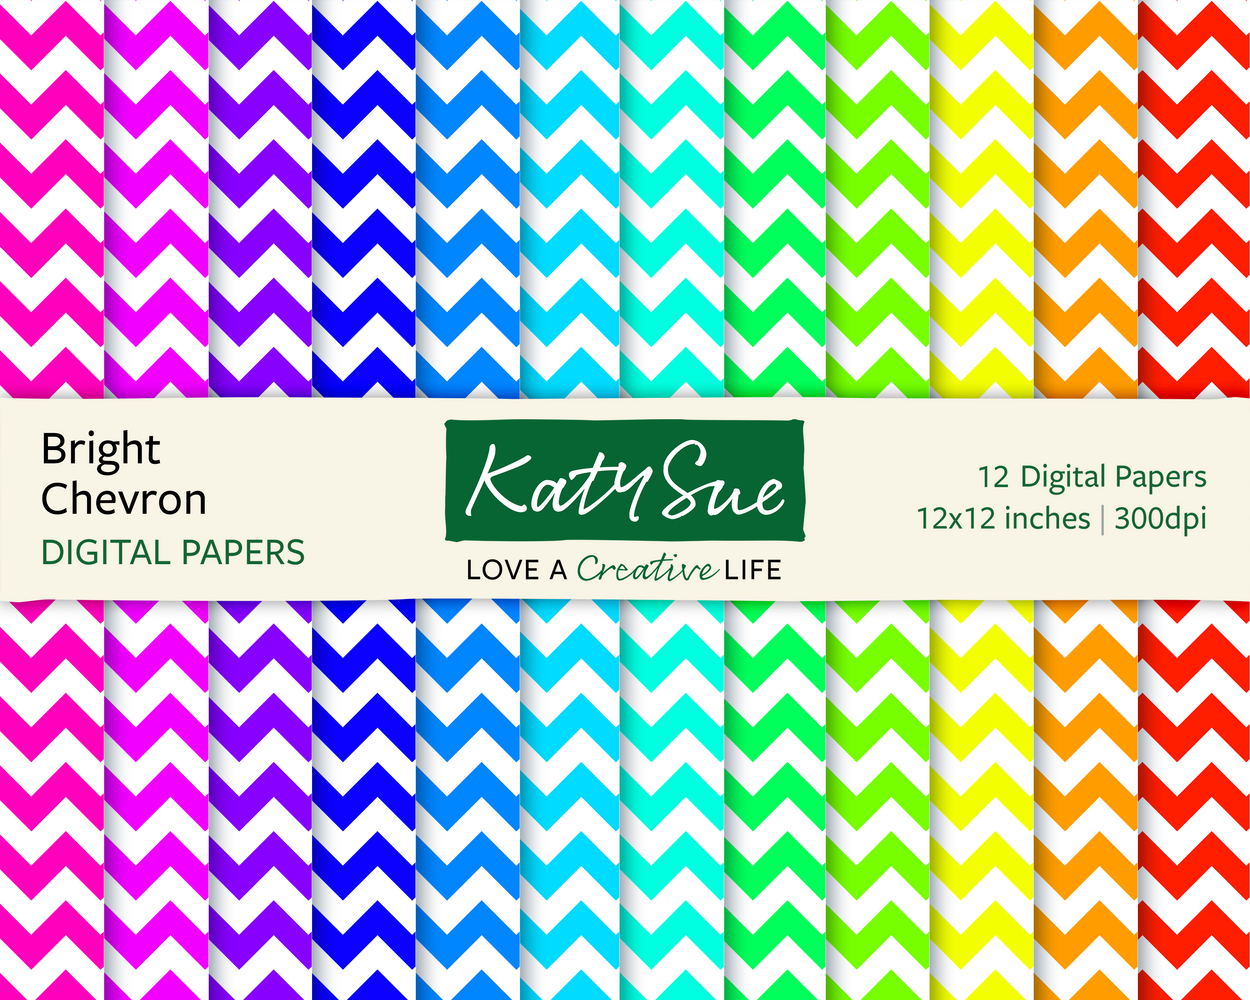 Bright Chevron | 12x12 Digital Papers